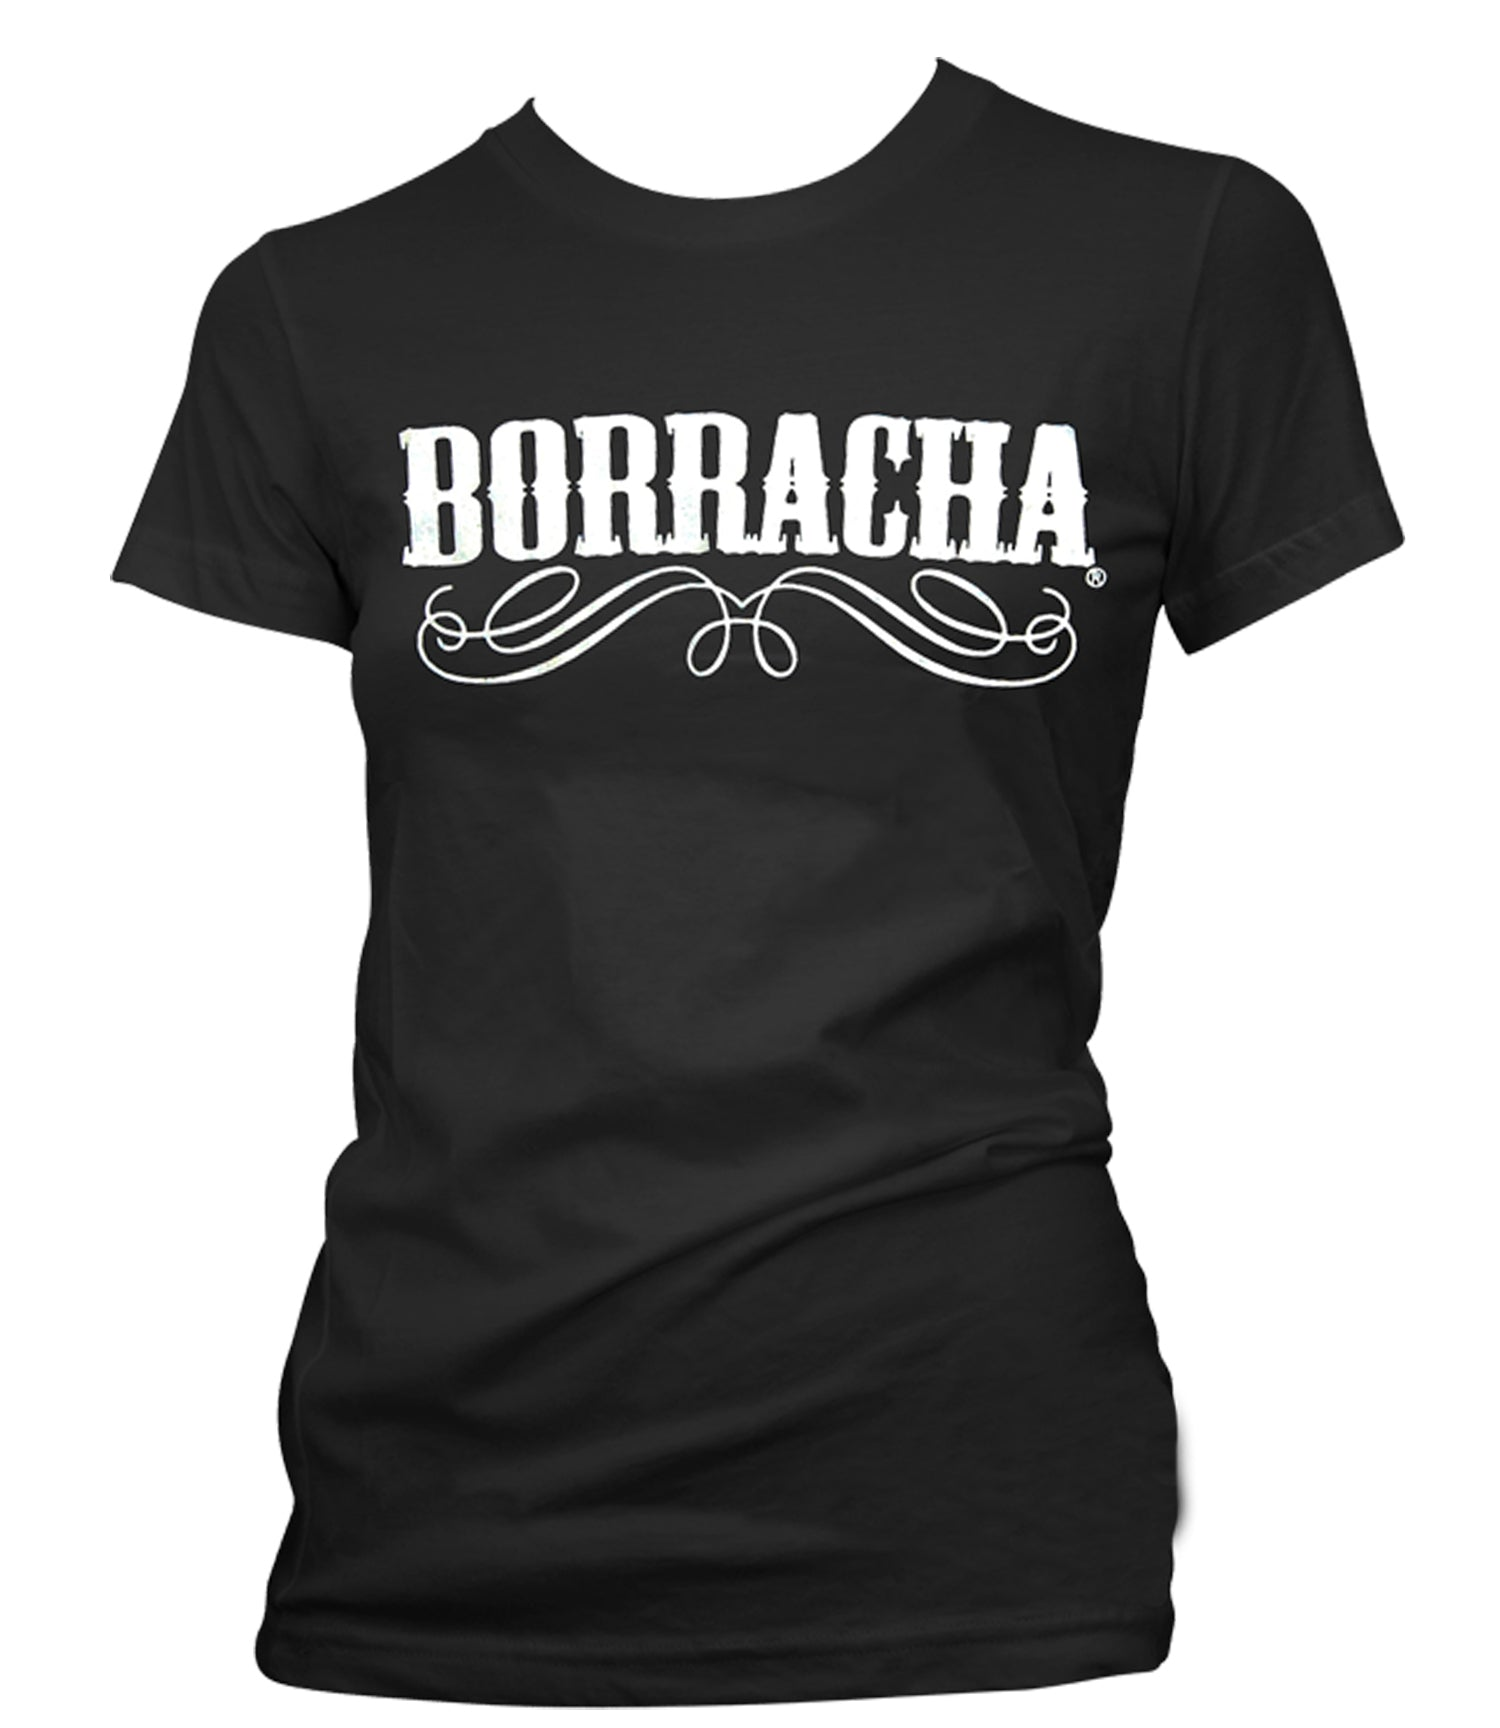 The BORRACHA Girl's Tee